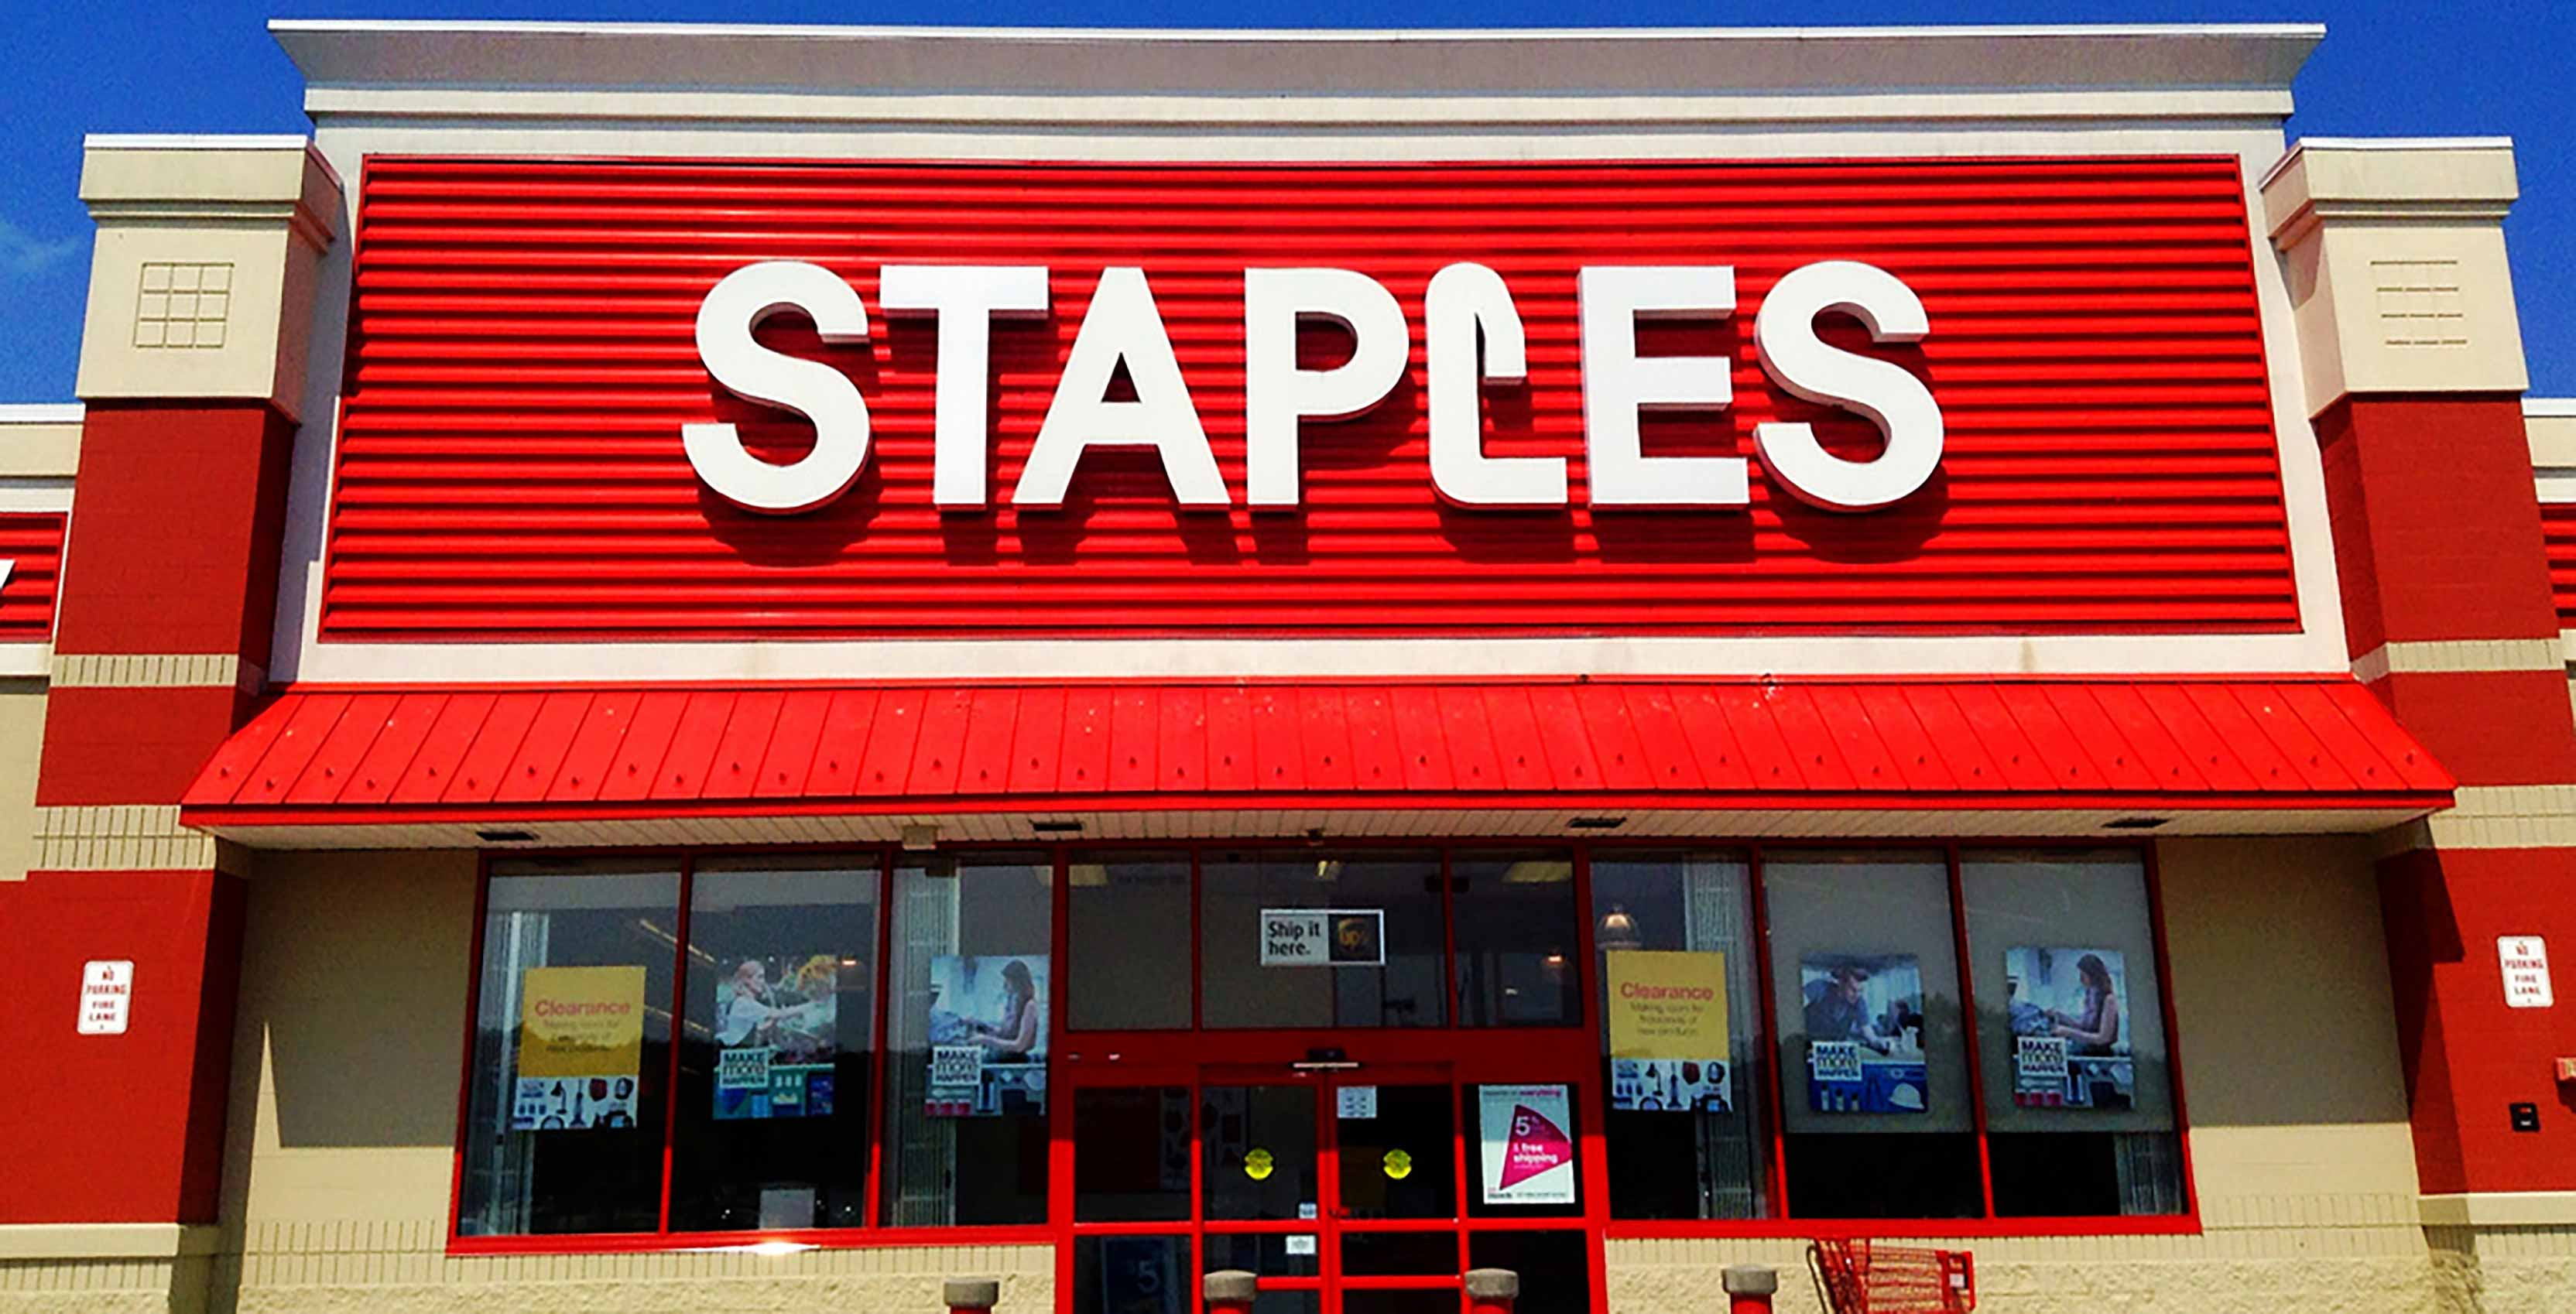 Staples store front